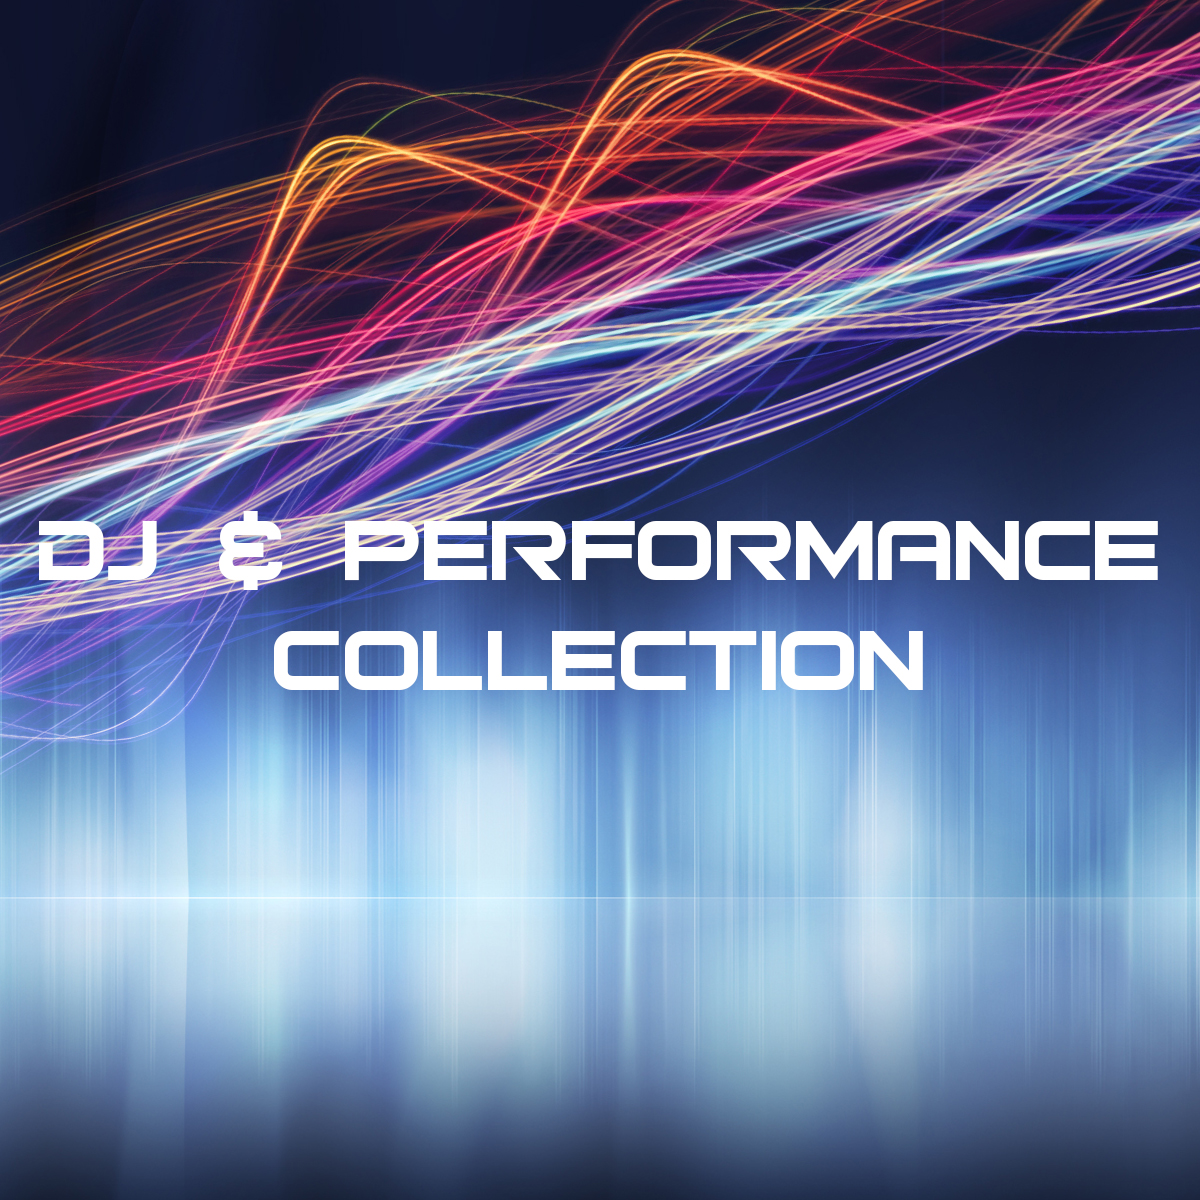 Dj'ing and Performance Collection